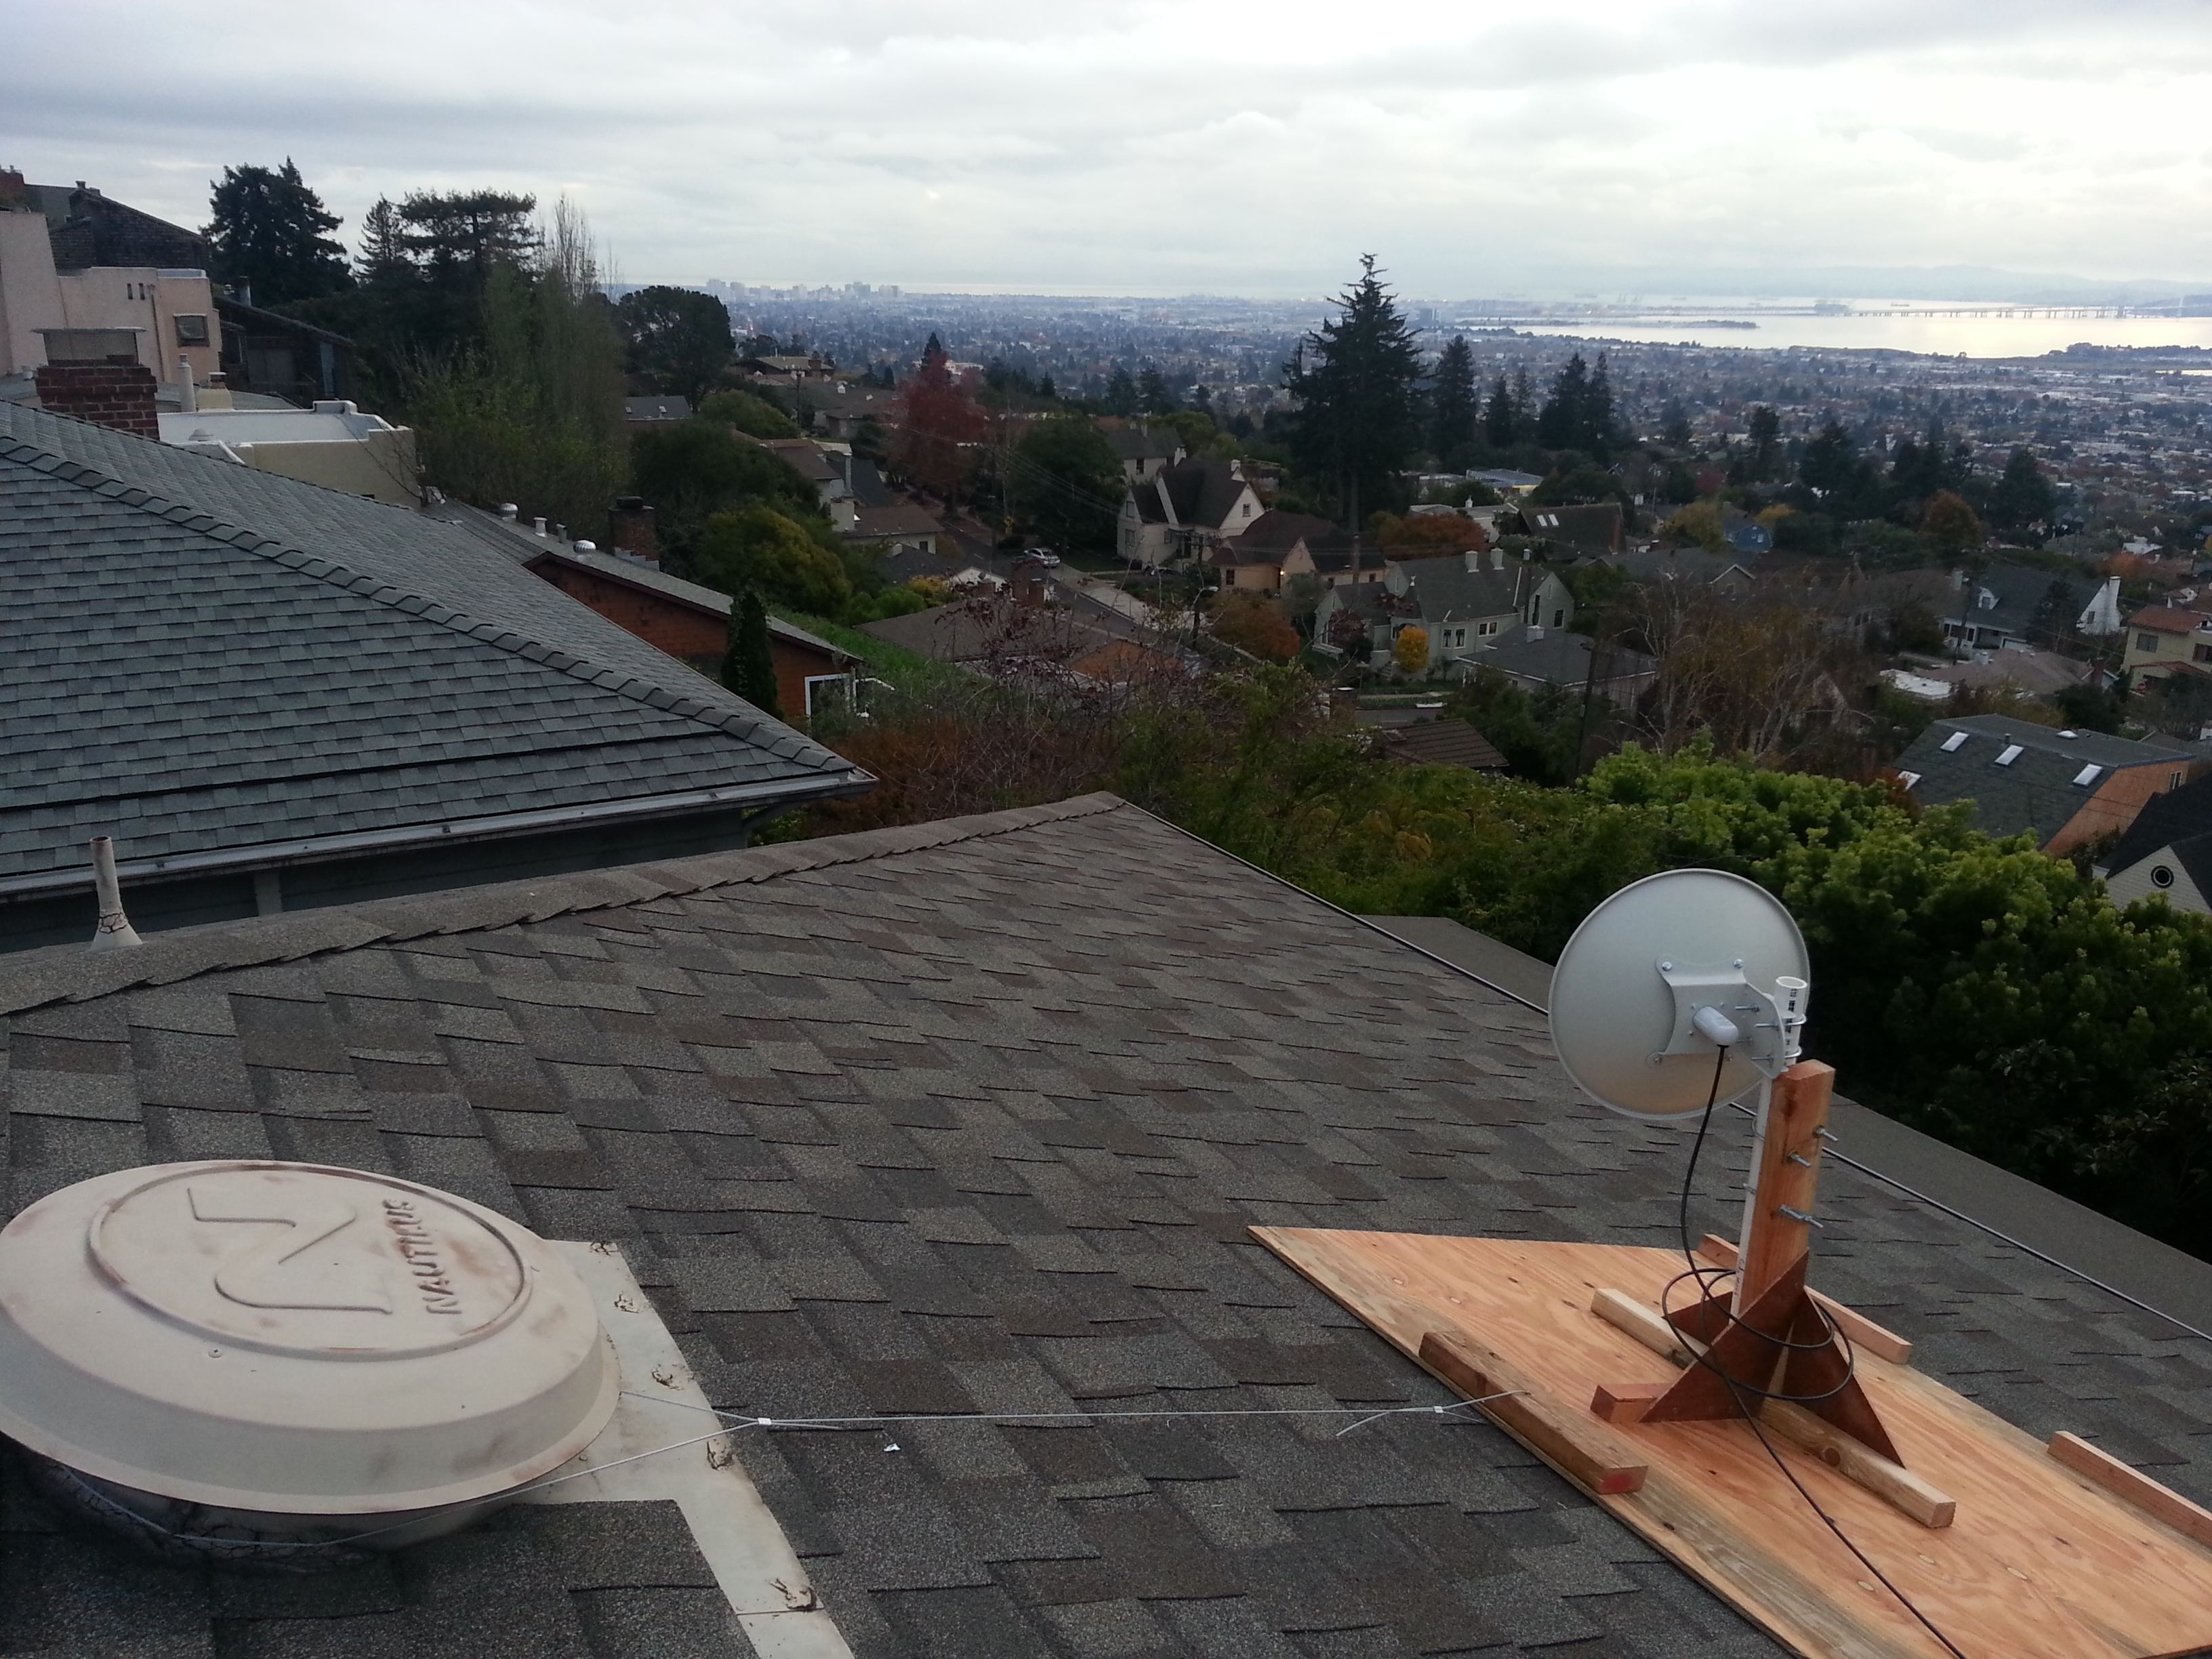 Sudomesh dish mount showing the cable attached to attic vent. & Rooftop Dish Antenna Mount - Sudo Room